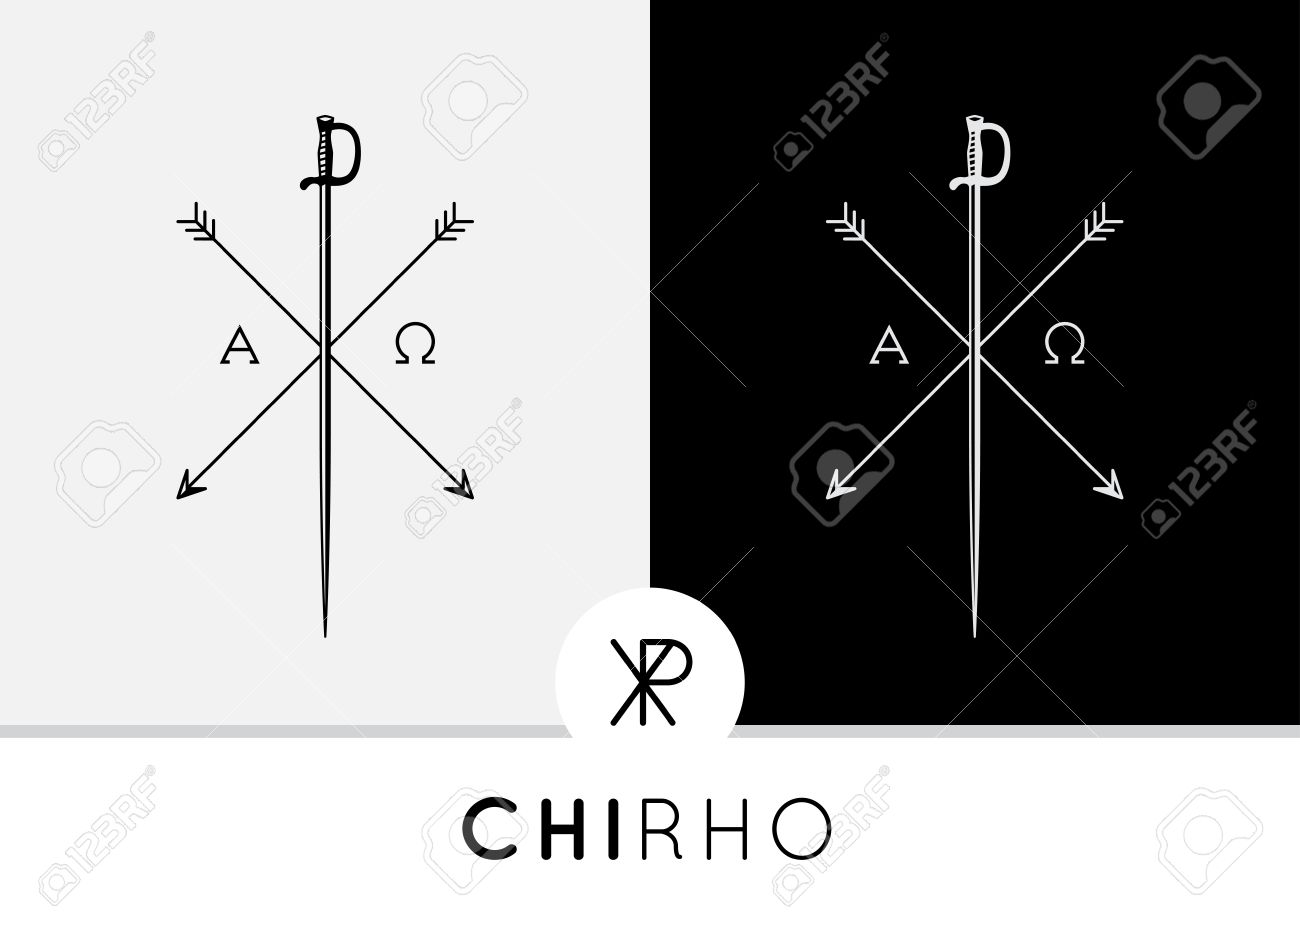 Conceptual abstract chi rho symbol design with sword arrows conceptual abstract chi rho symbol design with sword arrows combined with alpha omega signs buycottarizona